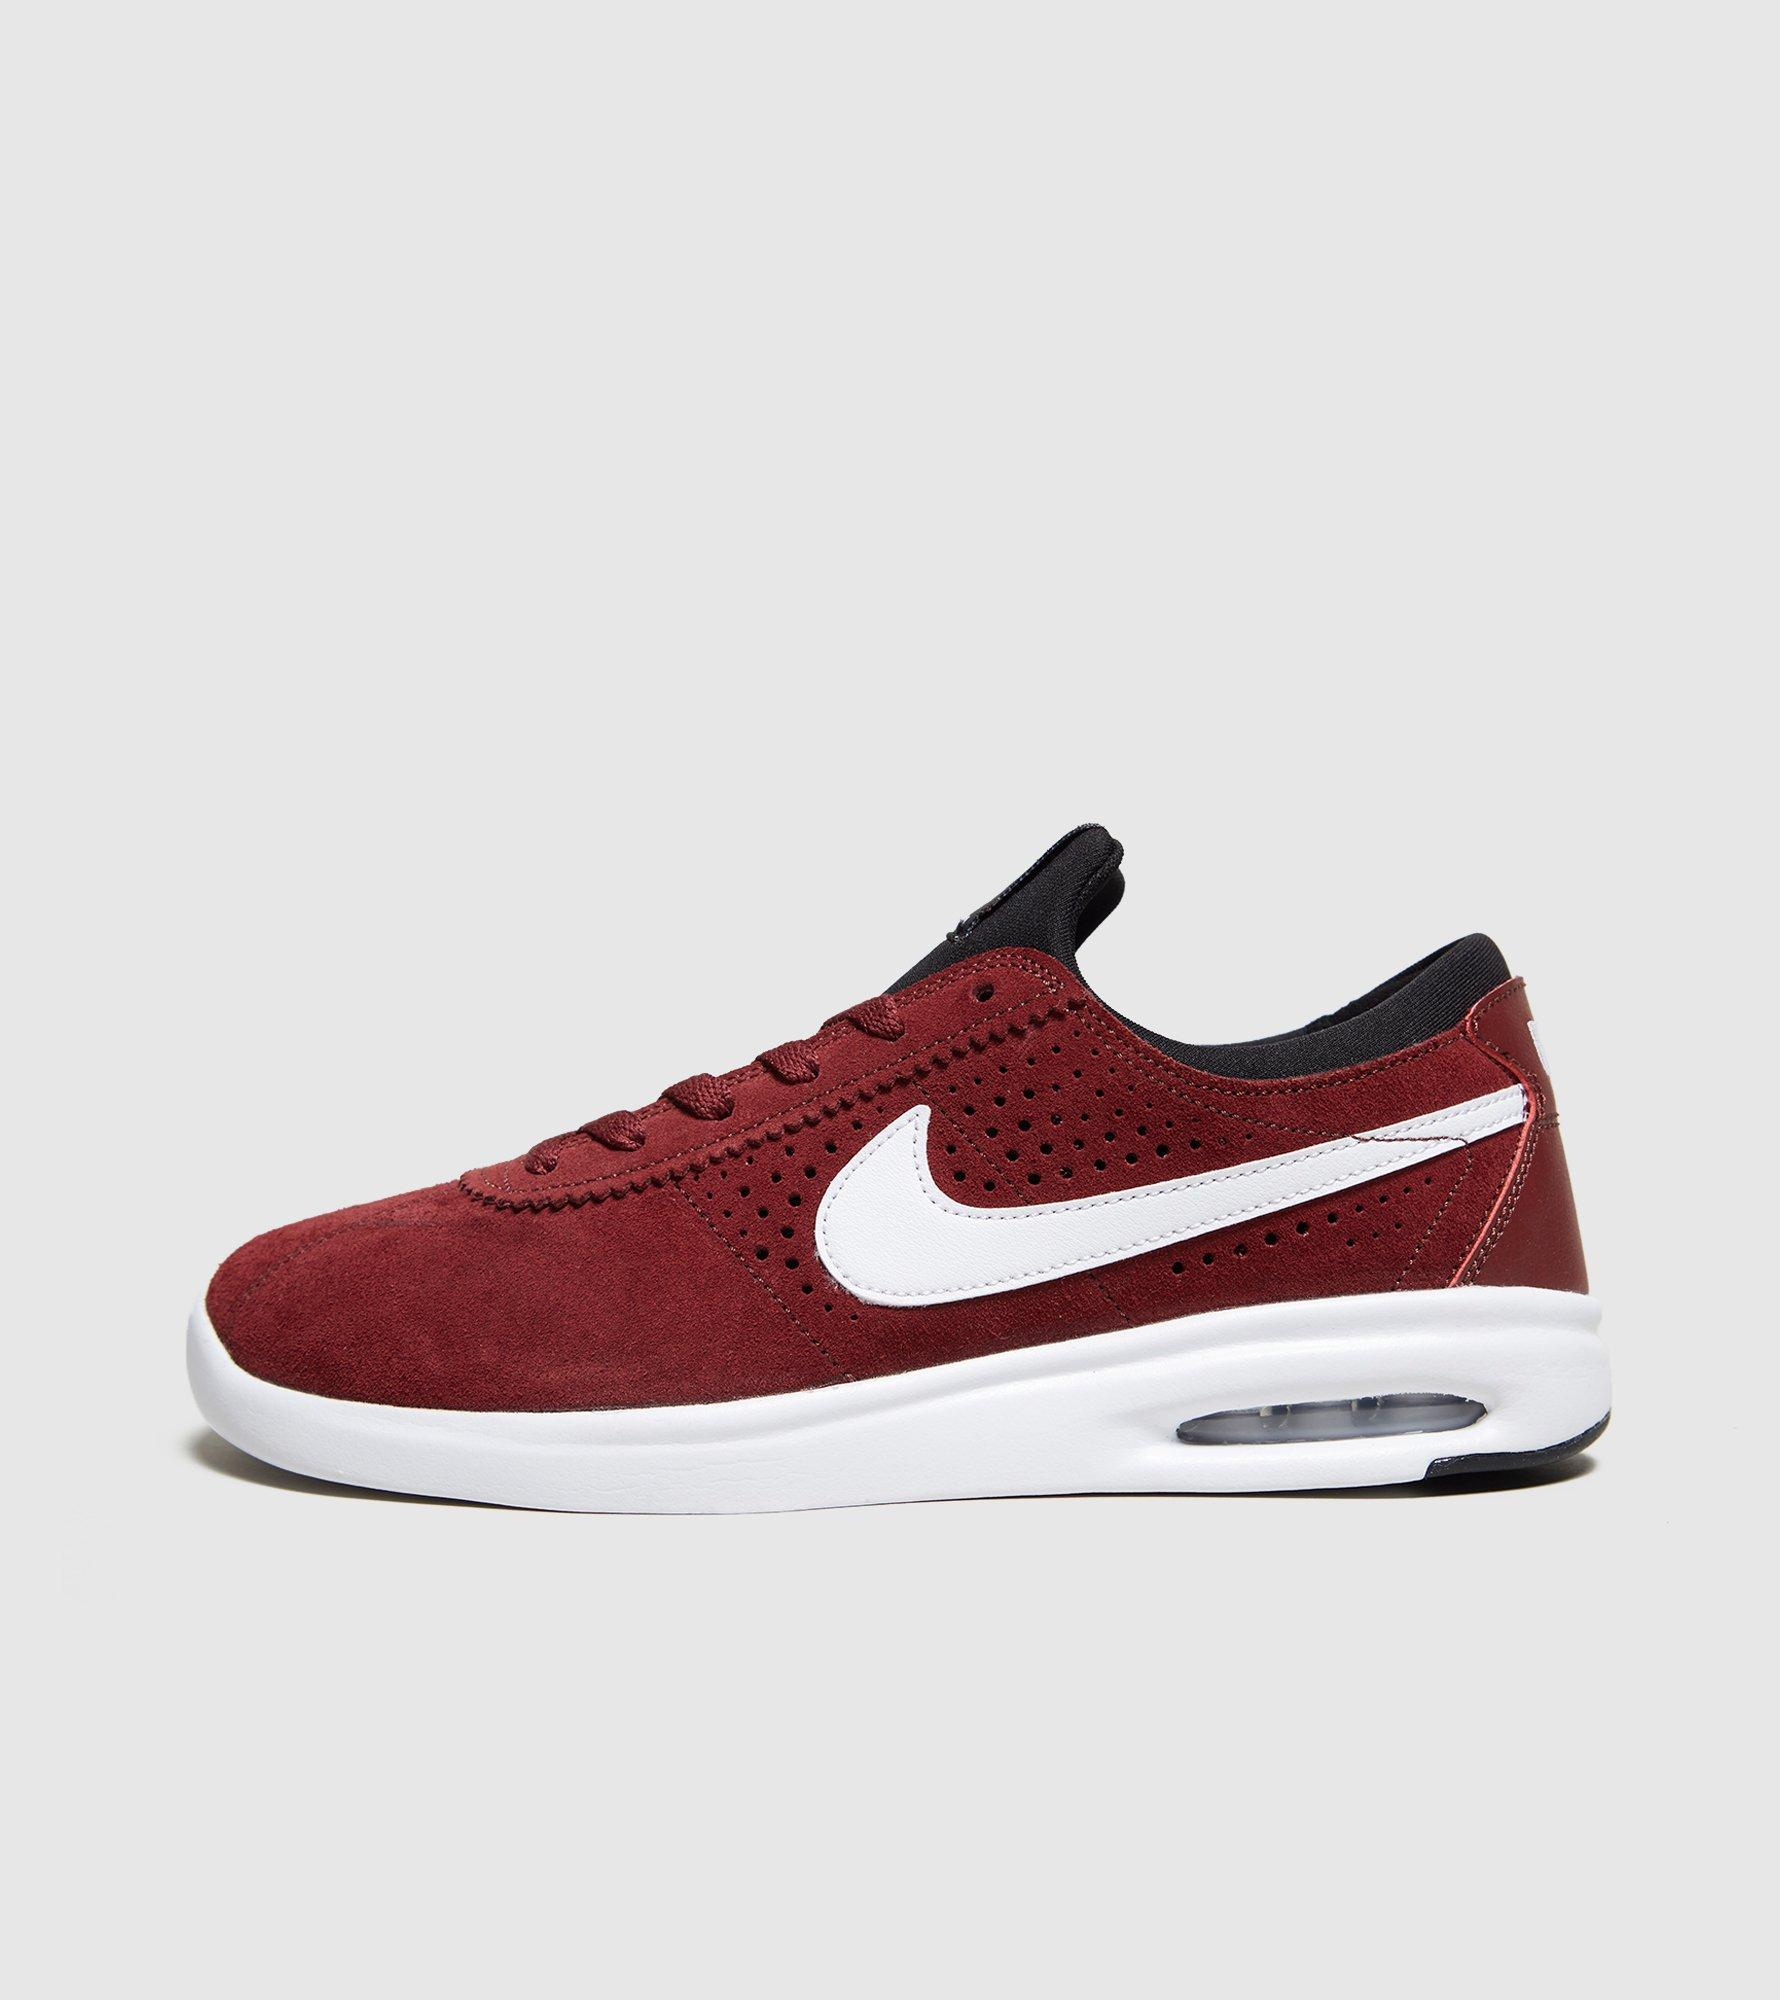 Nike Bruin Max Shoes